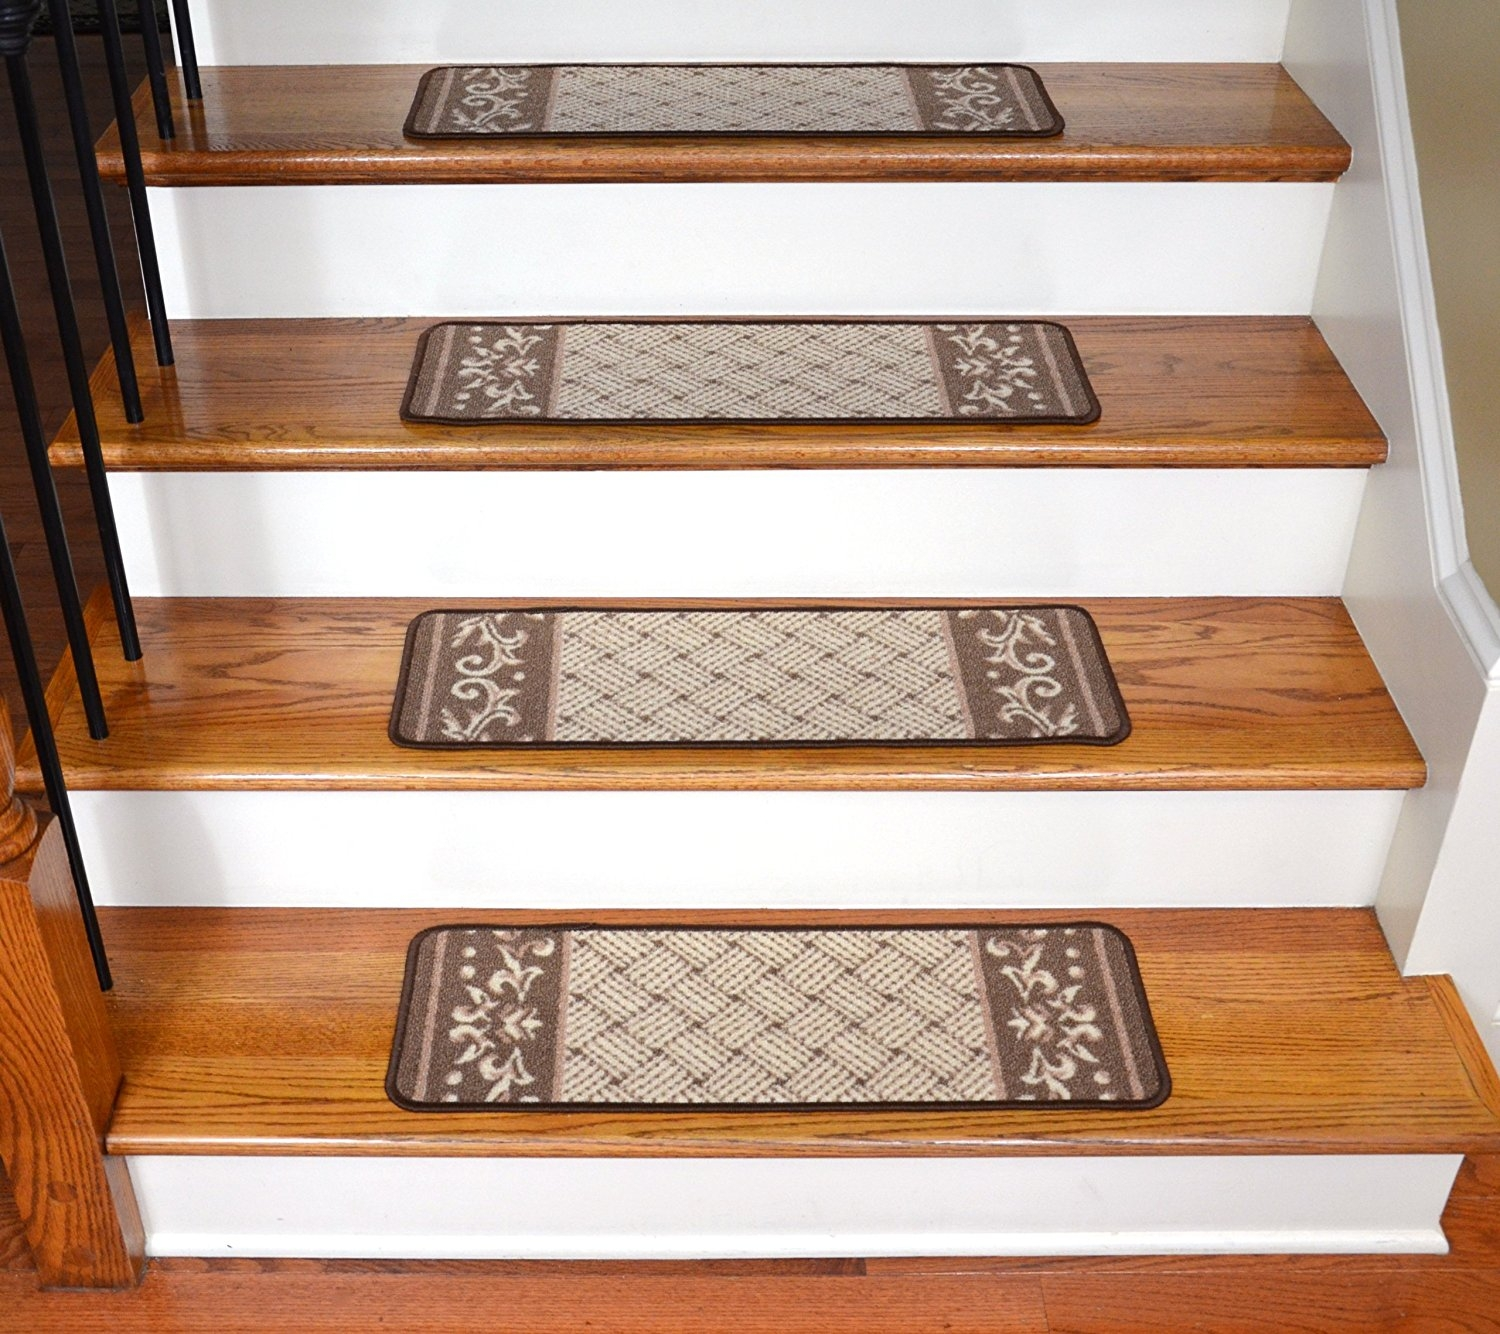 Amazon Carpet Stair Treads Caramel Scroll Border Throughout Stair Tread Rugs For Dogs (Image 3 of 15)